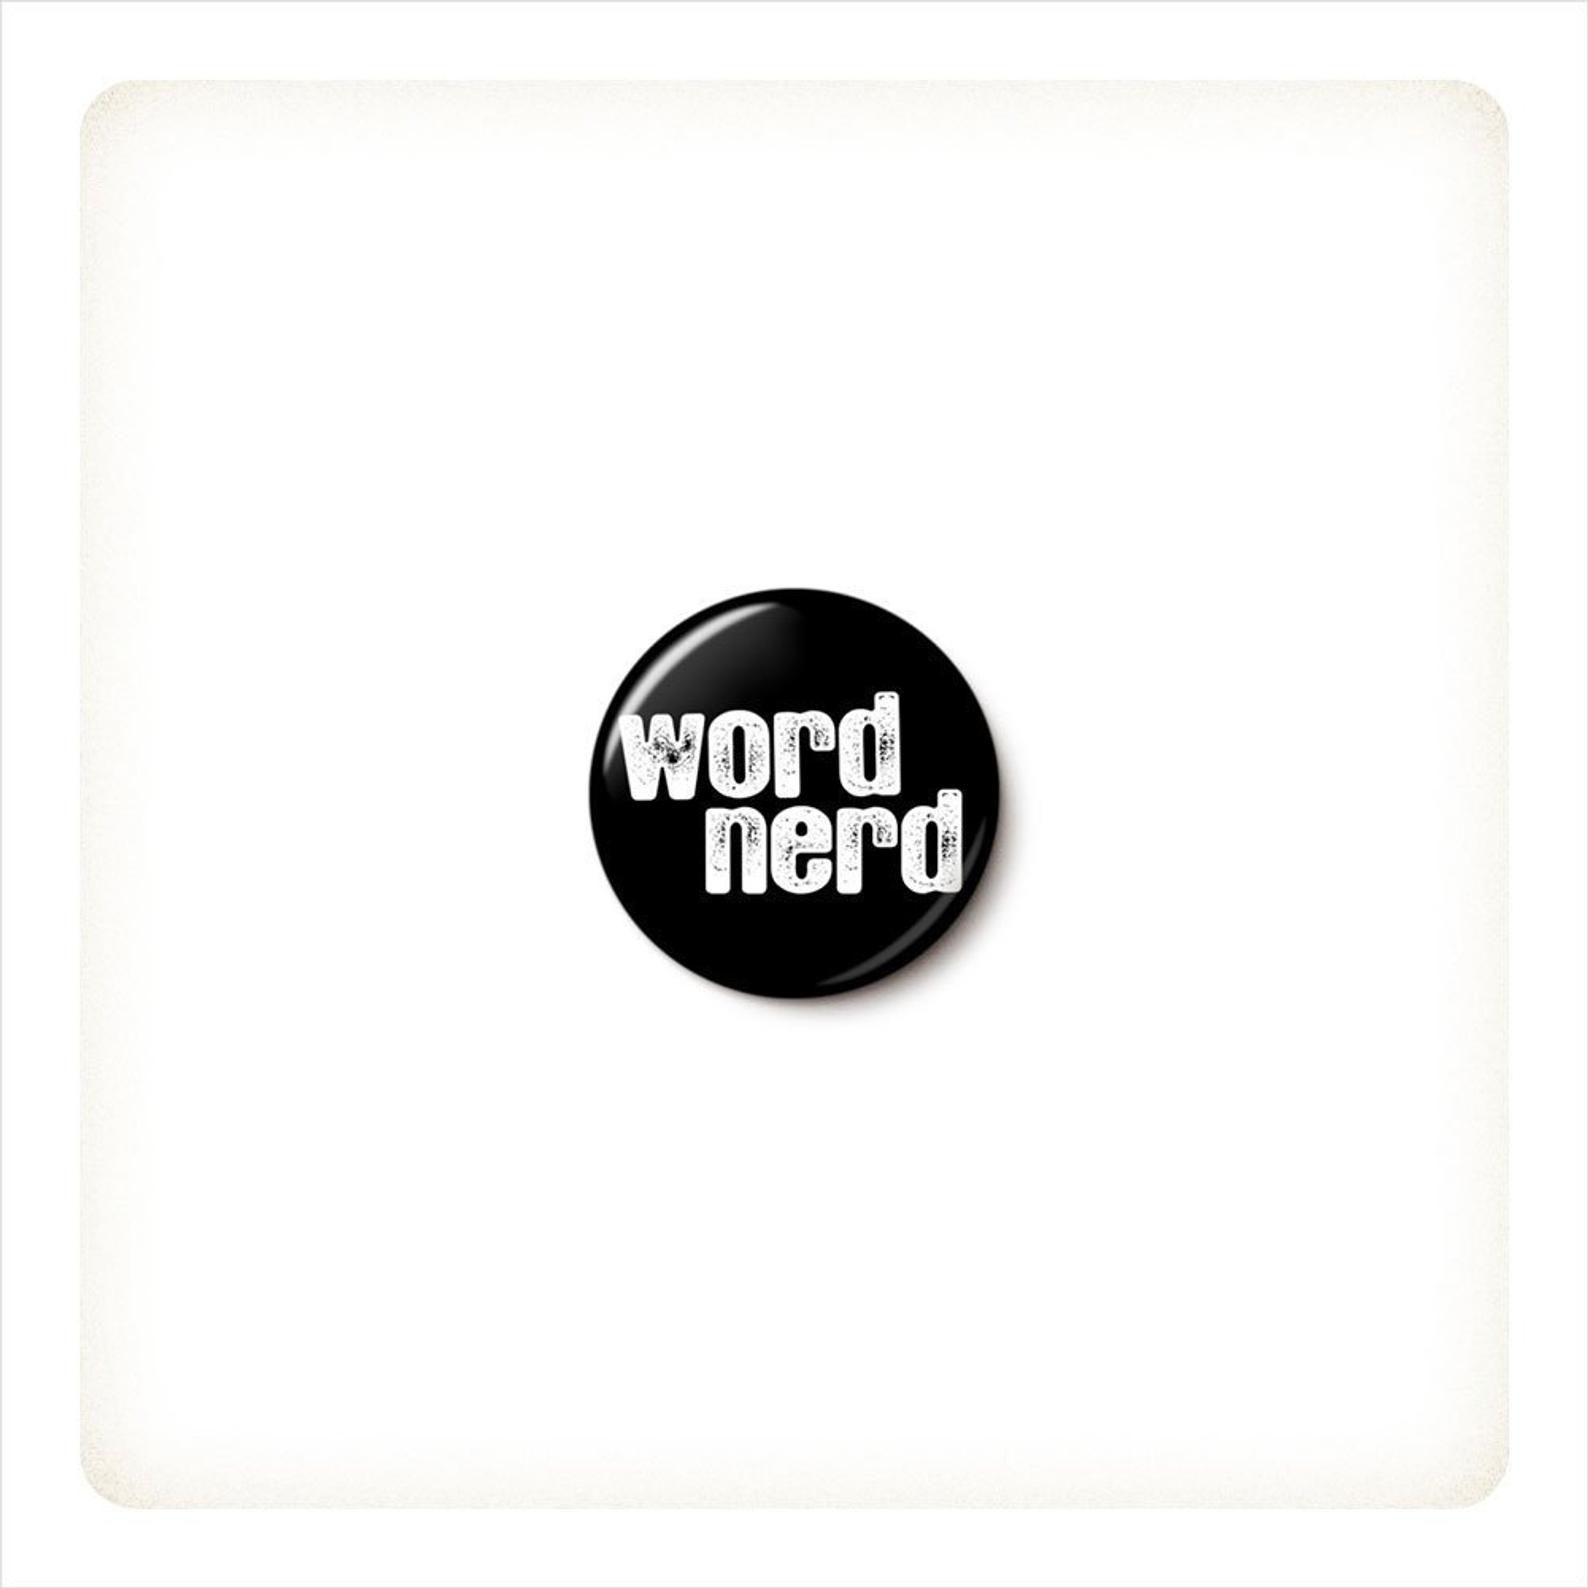 """A black pin that reads """"word nerd"""" in white lettering."""